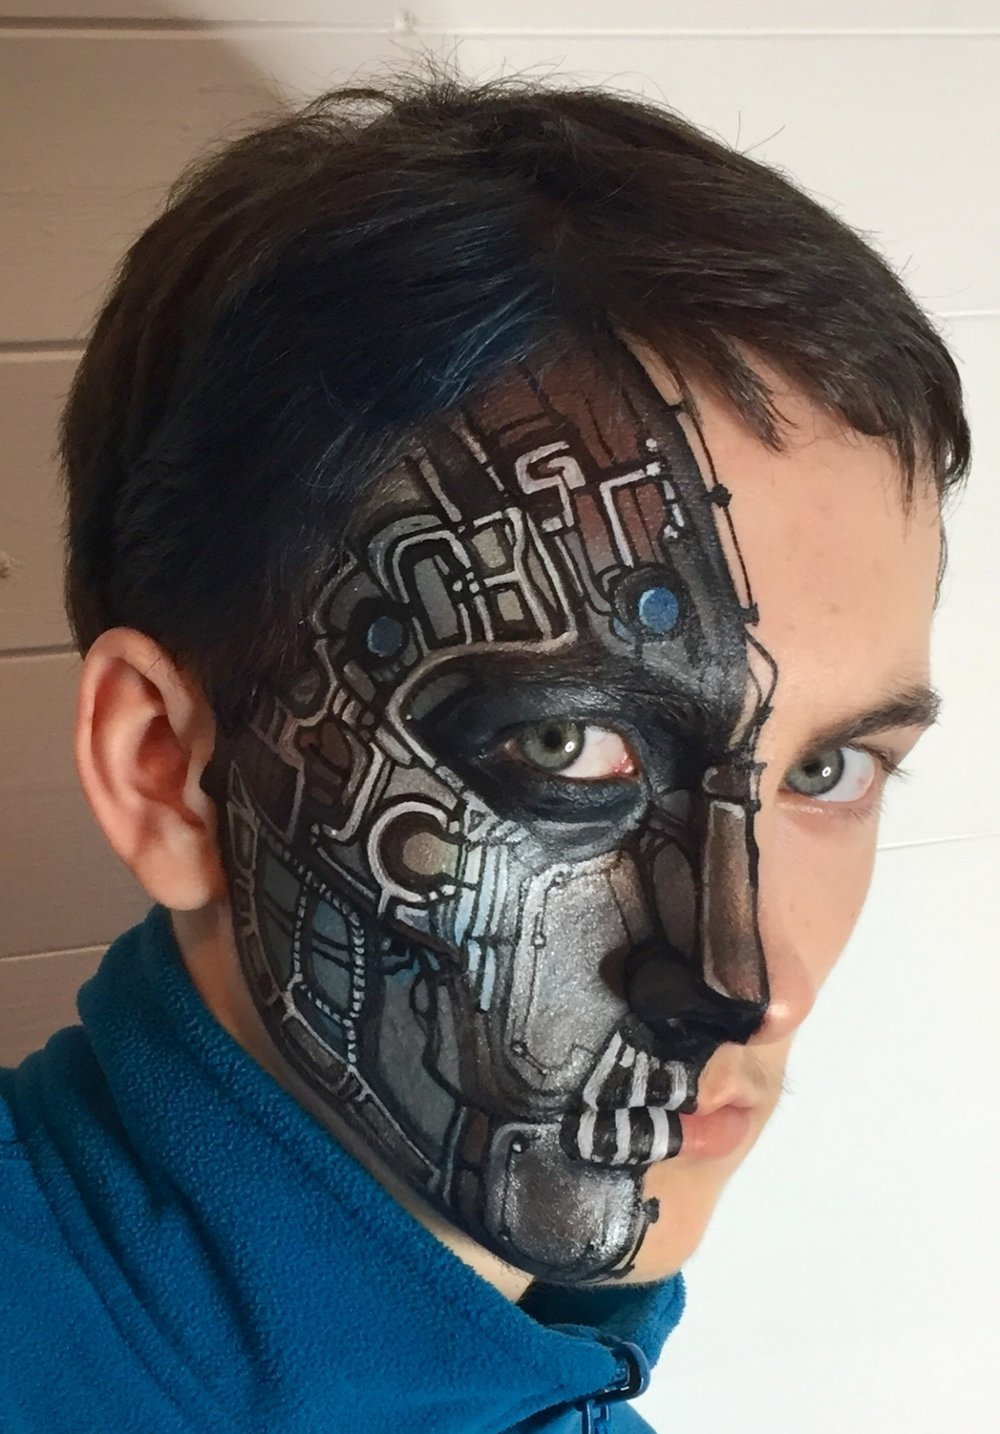 T Cyborg half face by Brierley Thorpe.jpg